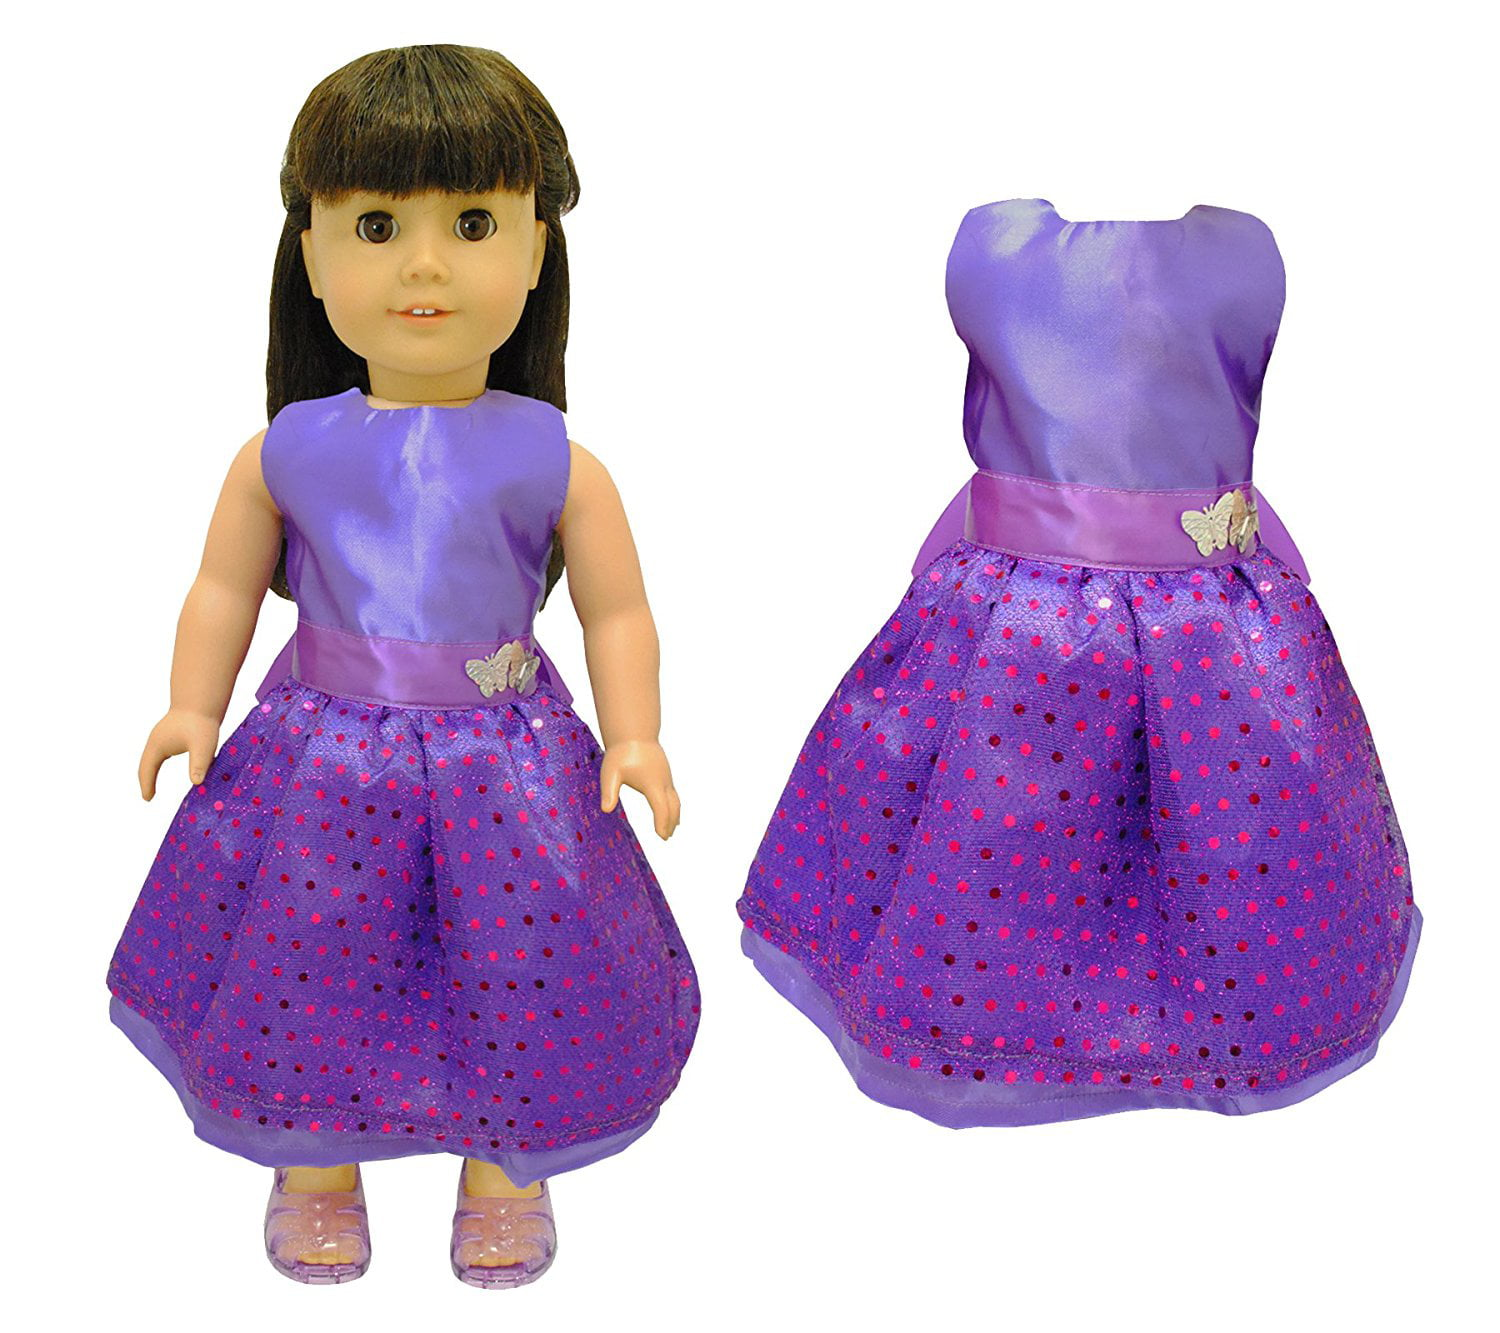 Doll Clothes Beautiful Purple Dress with Dots Outfit Fits American Girl Doll, My Life Doll... by Pink Butterfly Closet